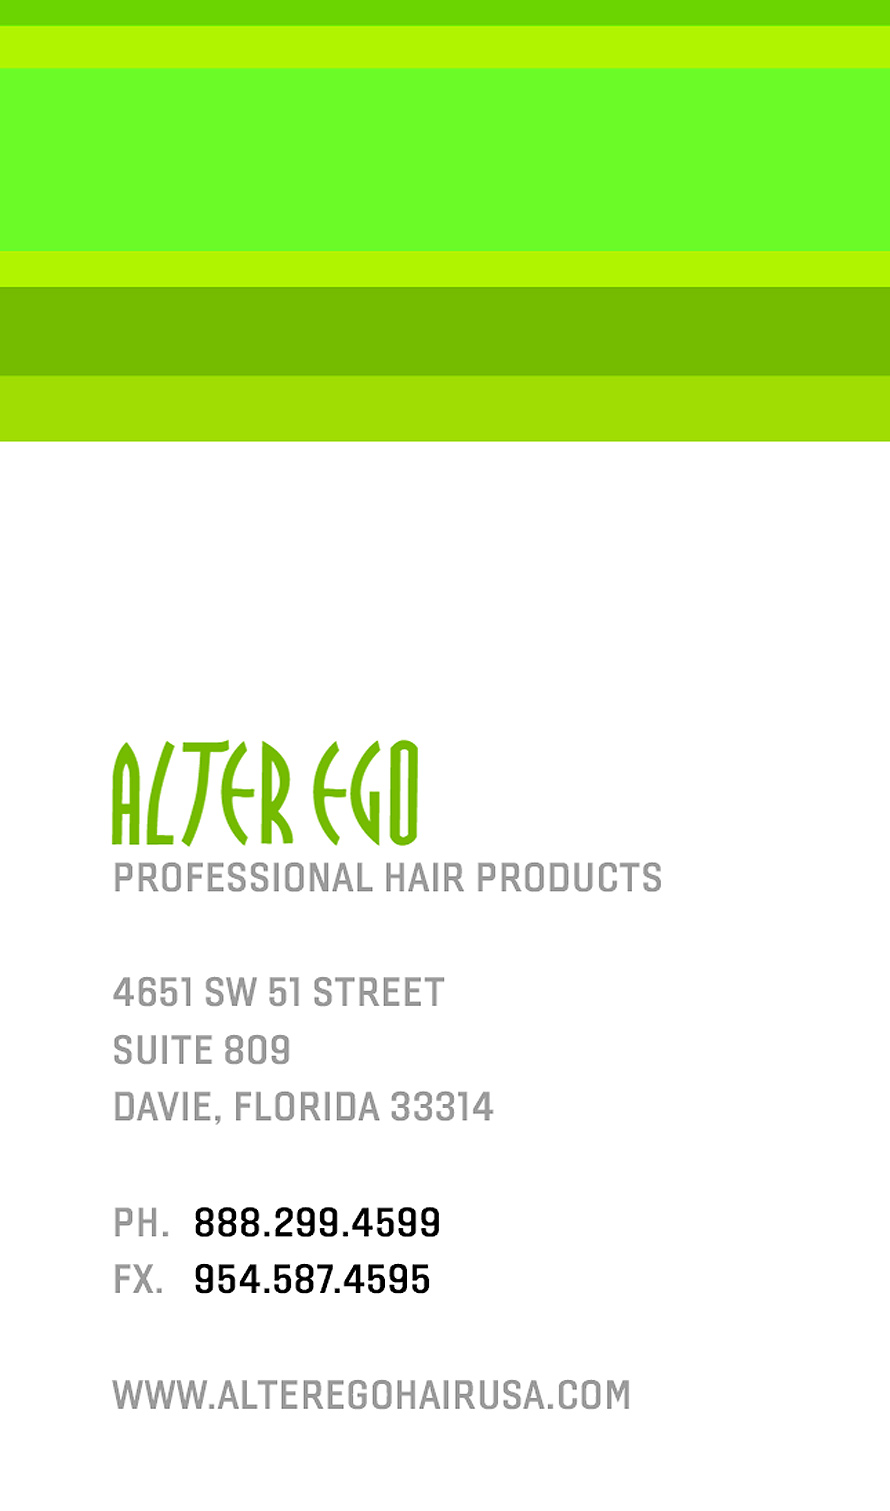 Alter Ego Professional Hair Products